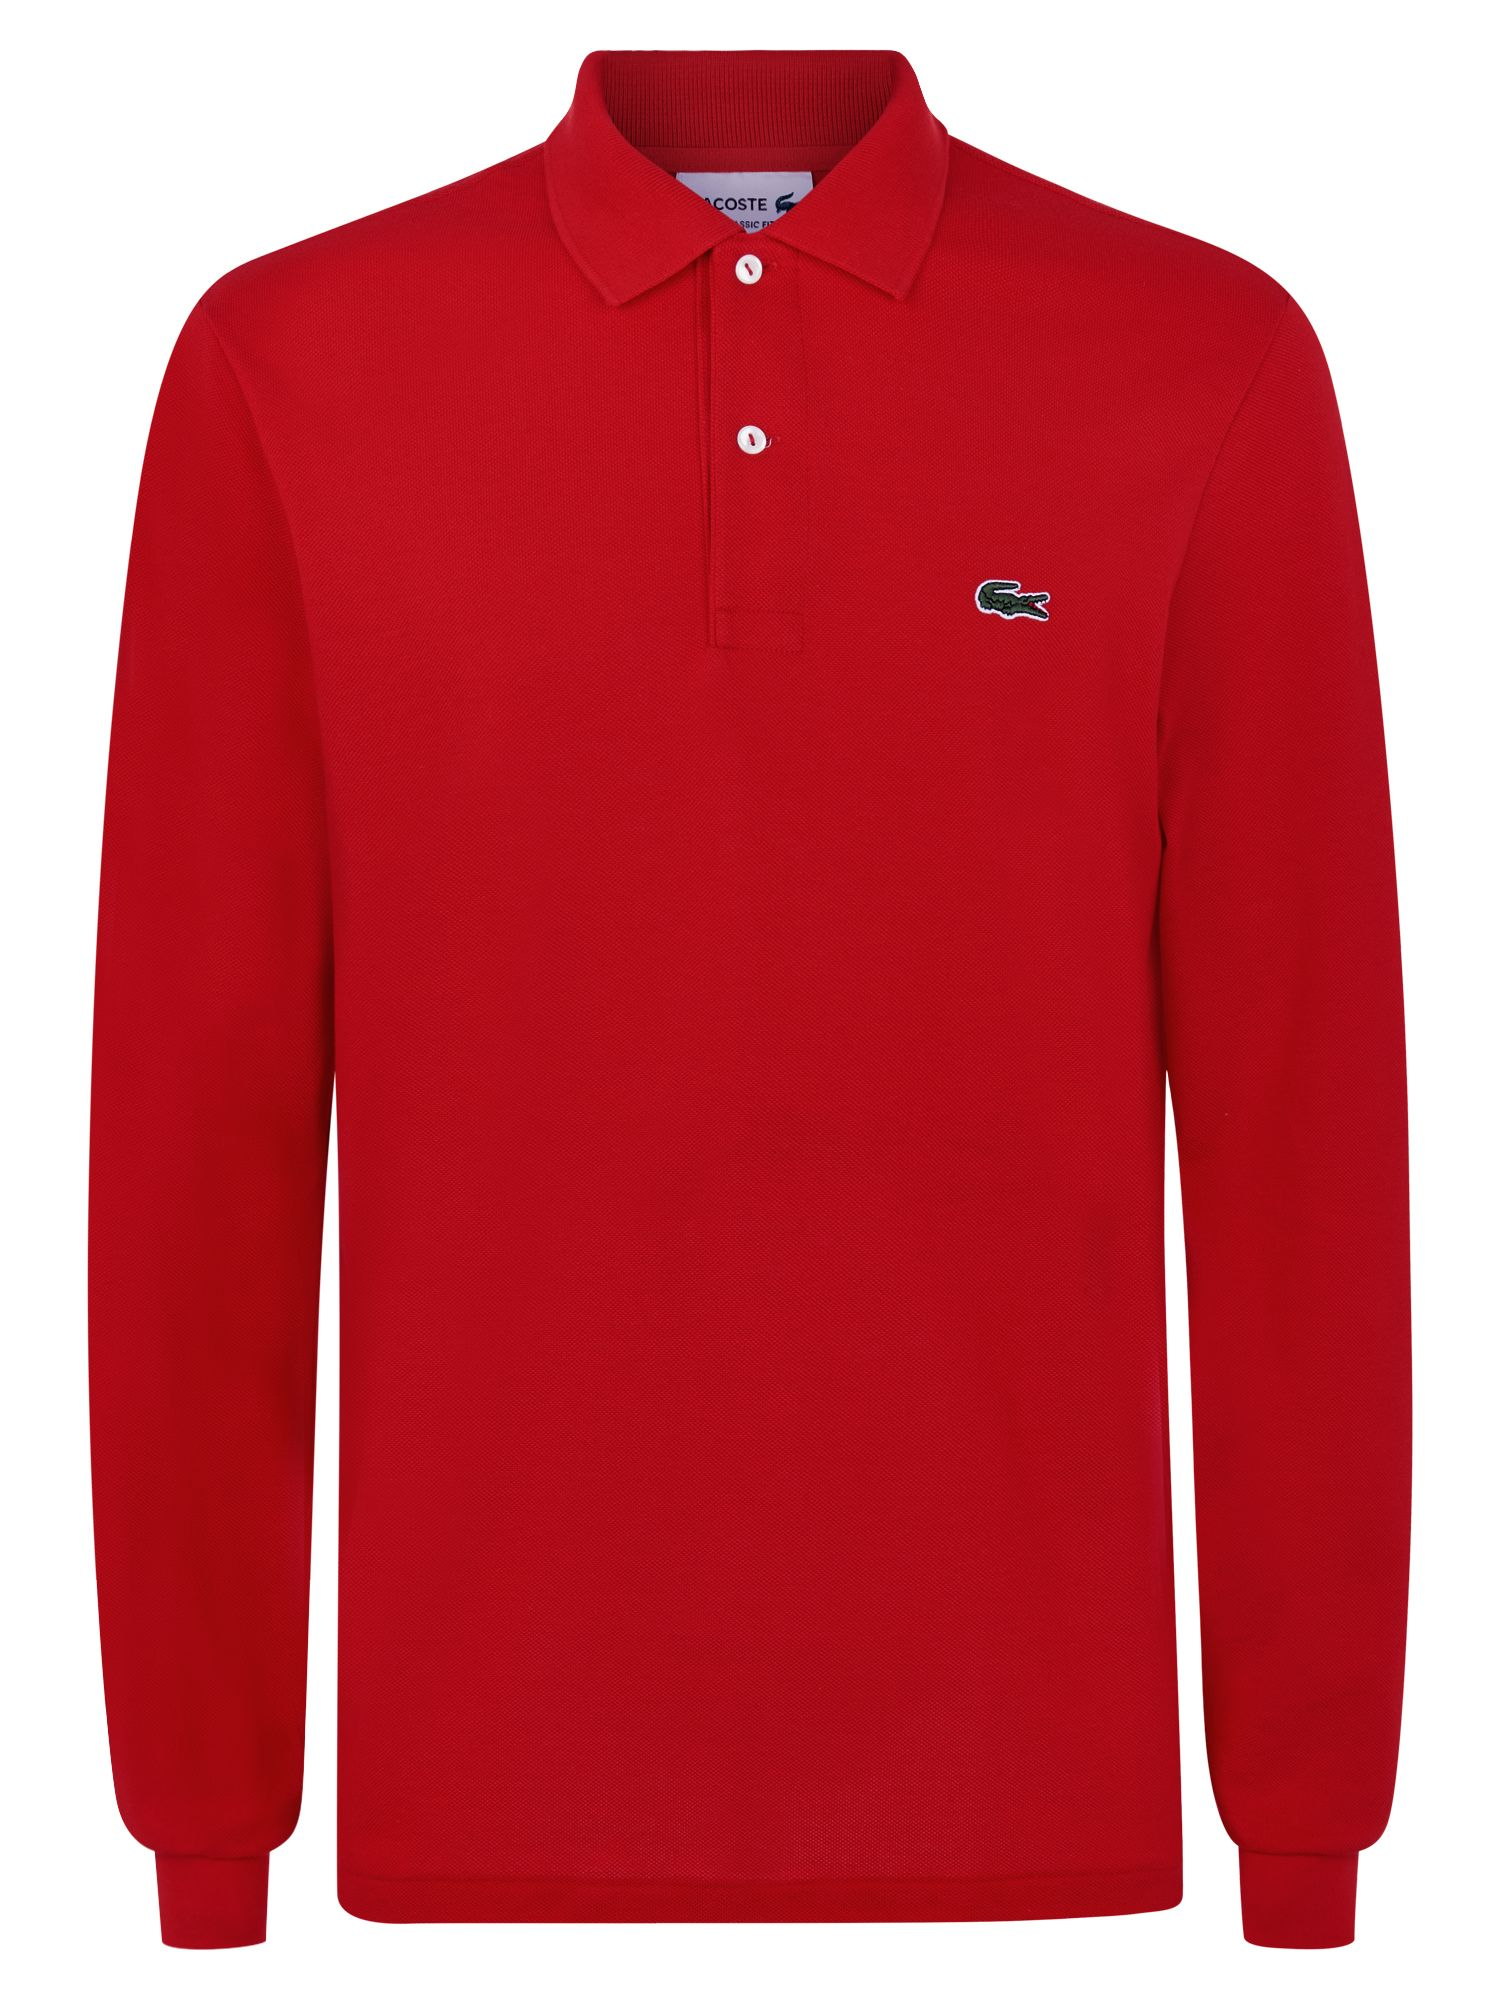 Men's Lacoste Lacoste Long Sleeve L.12.12 Polo, Red